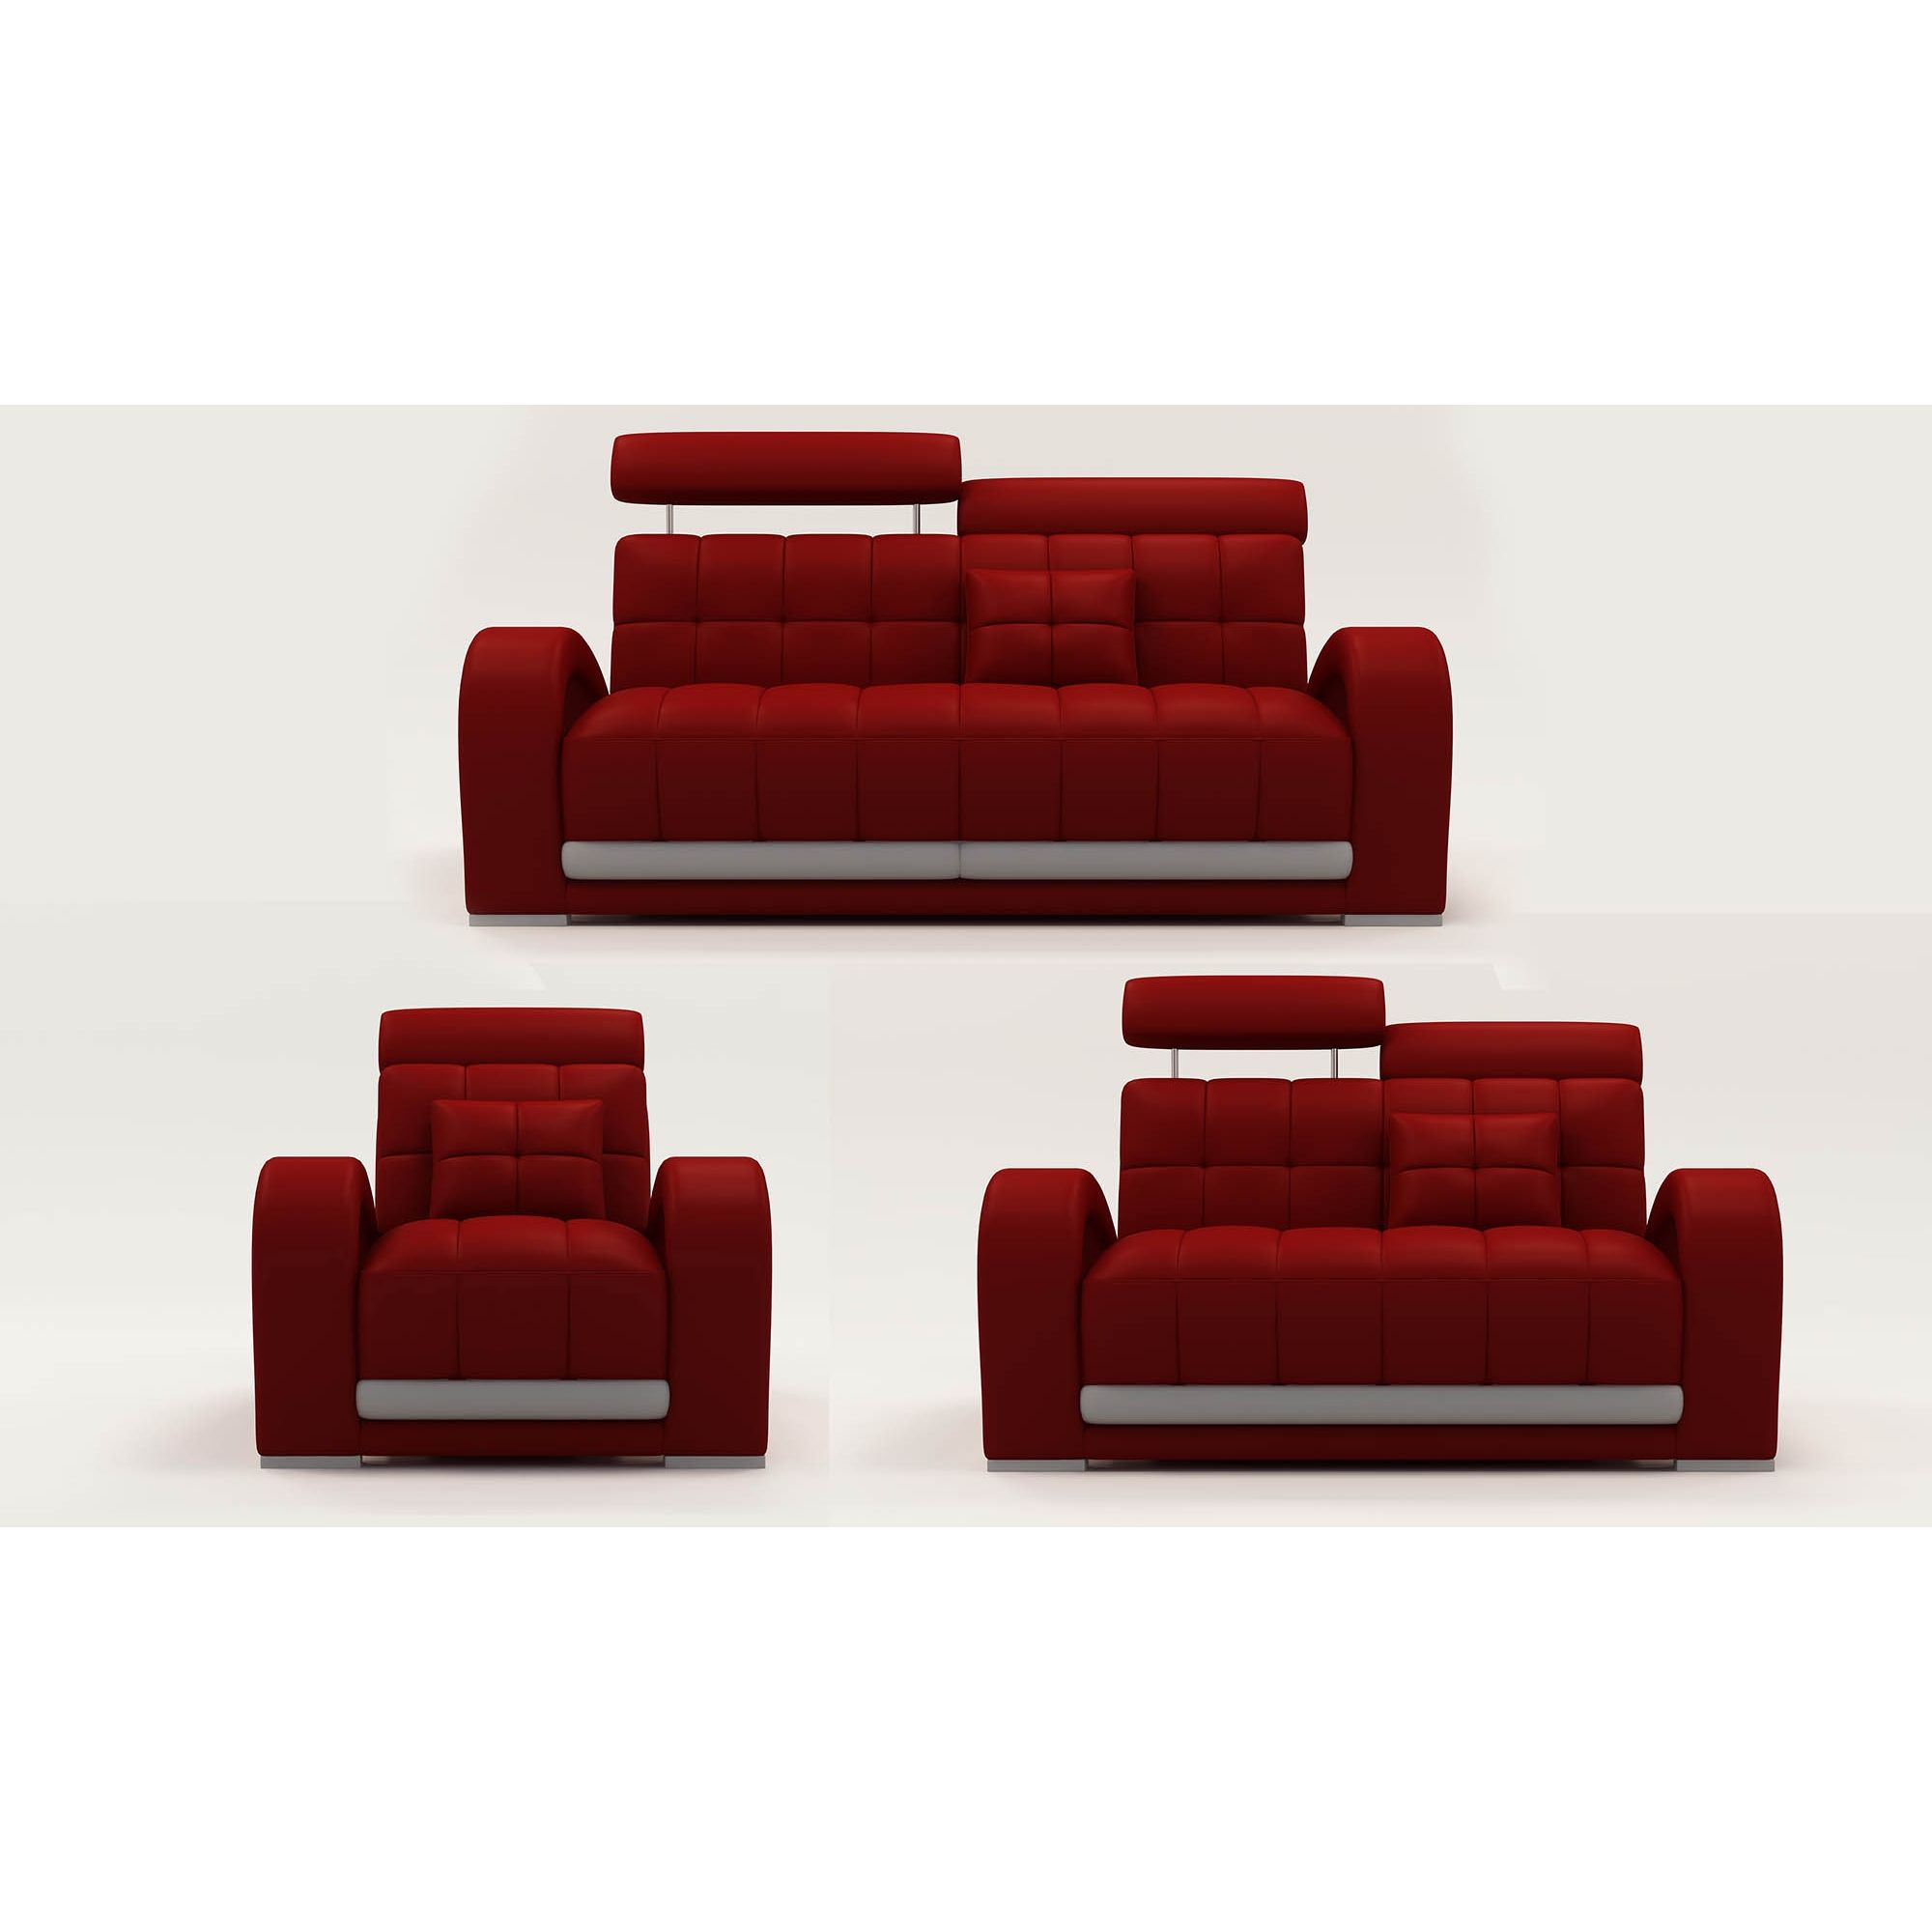 Deco in paris ensemble canape cuir verdi 3 1 1 places rouge et gris 2232 ro - Canape cuir rouge 3 places ...